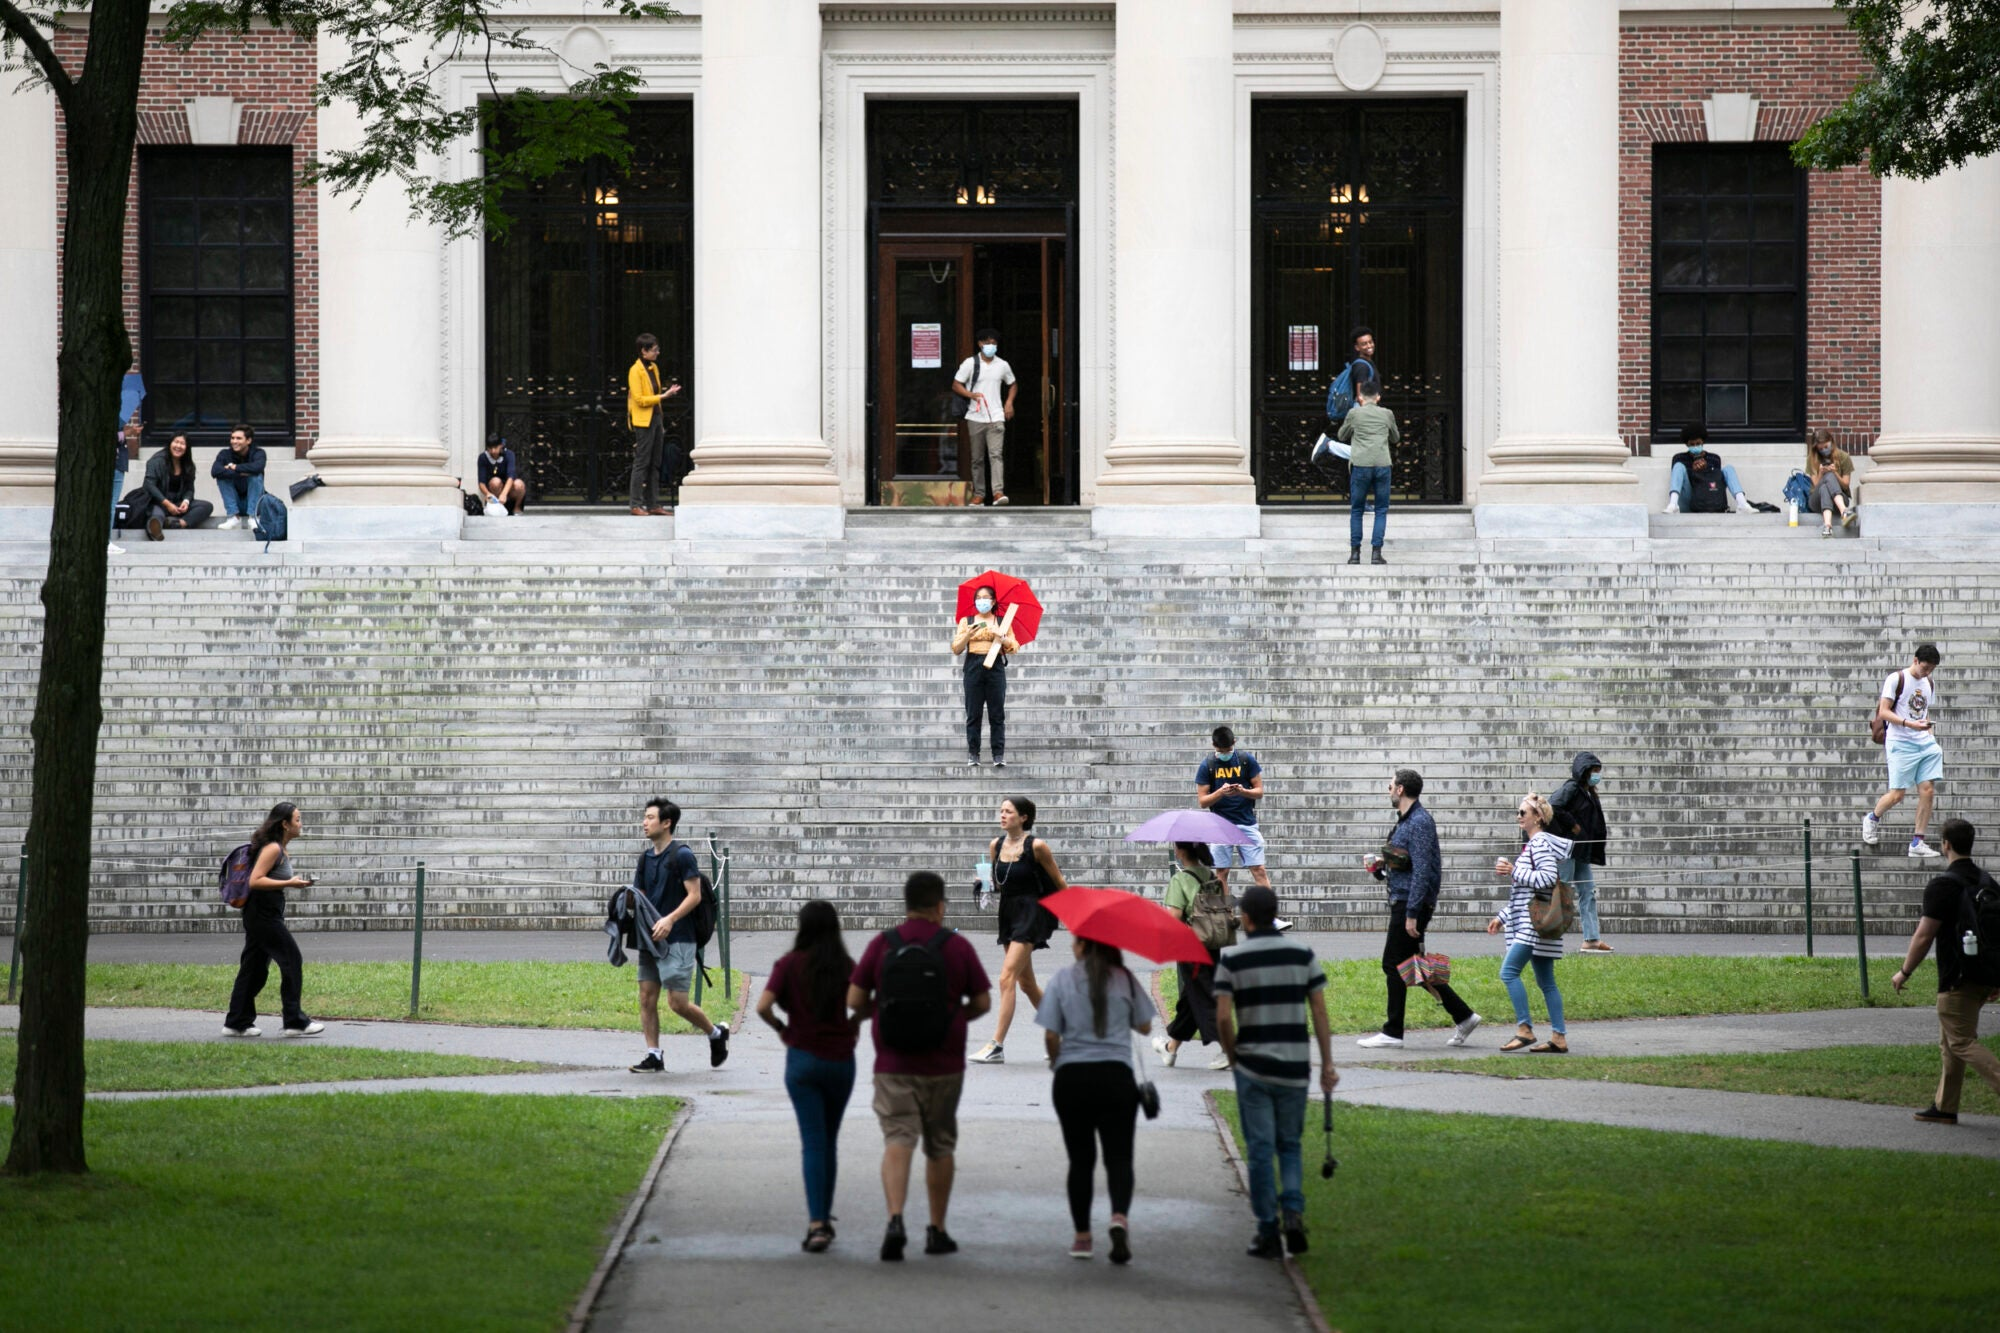 People, some with umbrellas, walk in front of and on the steps of Widener Library